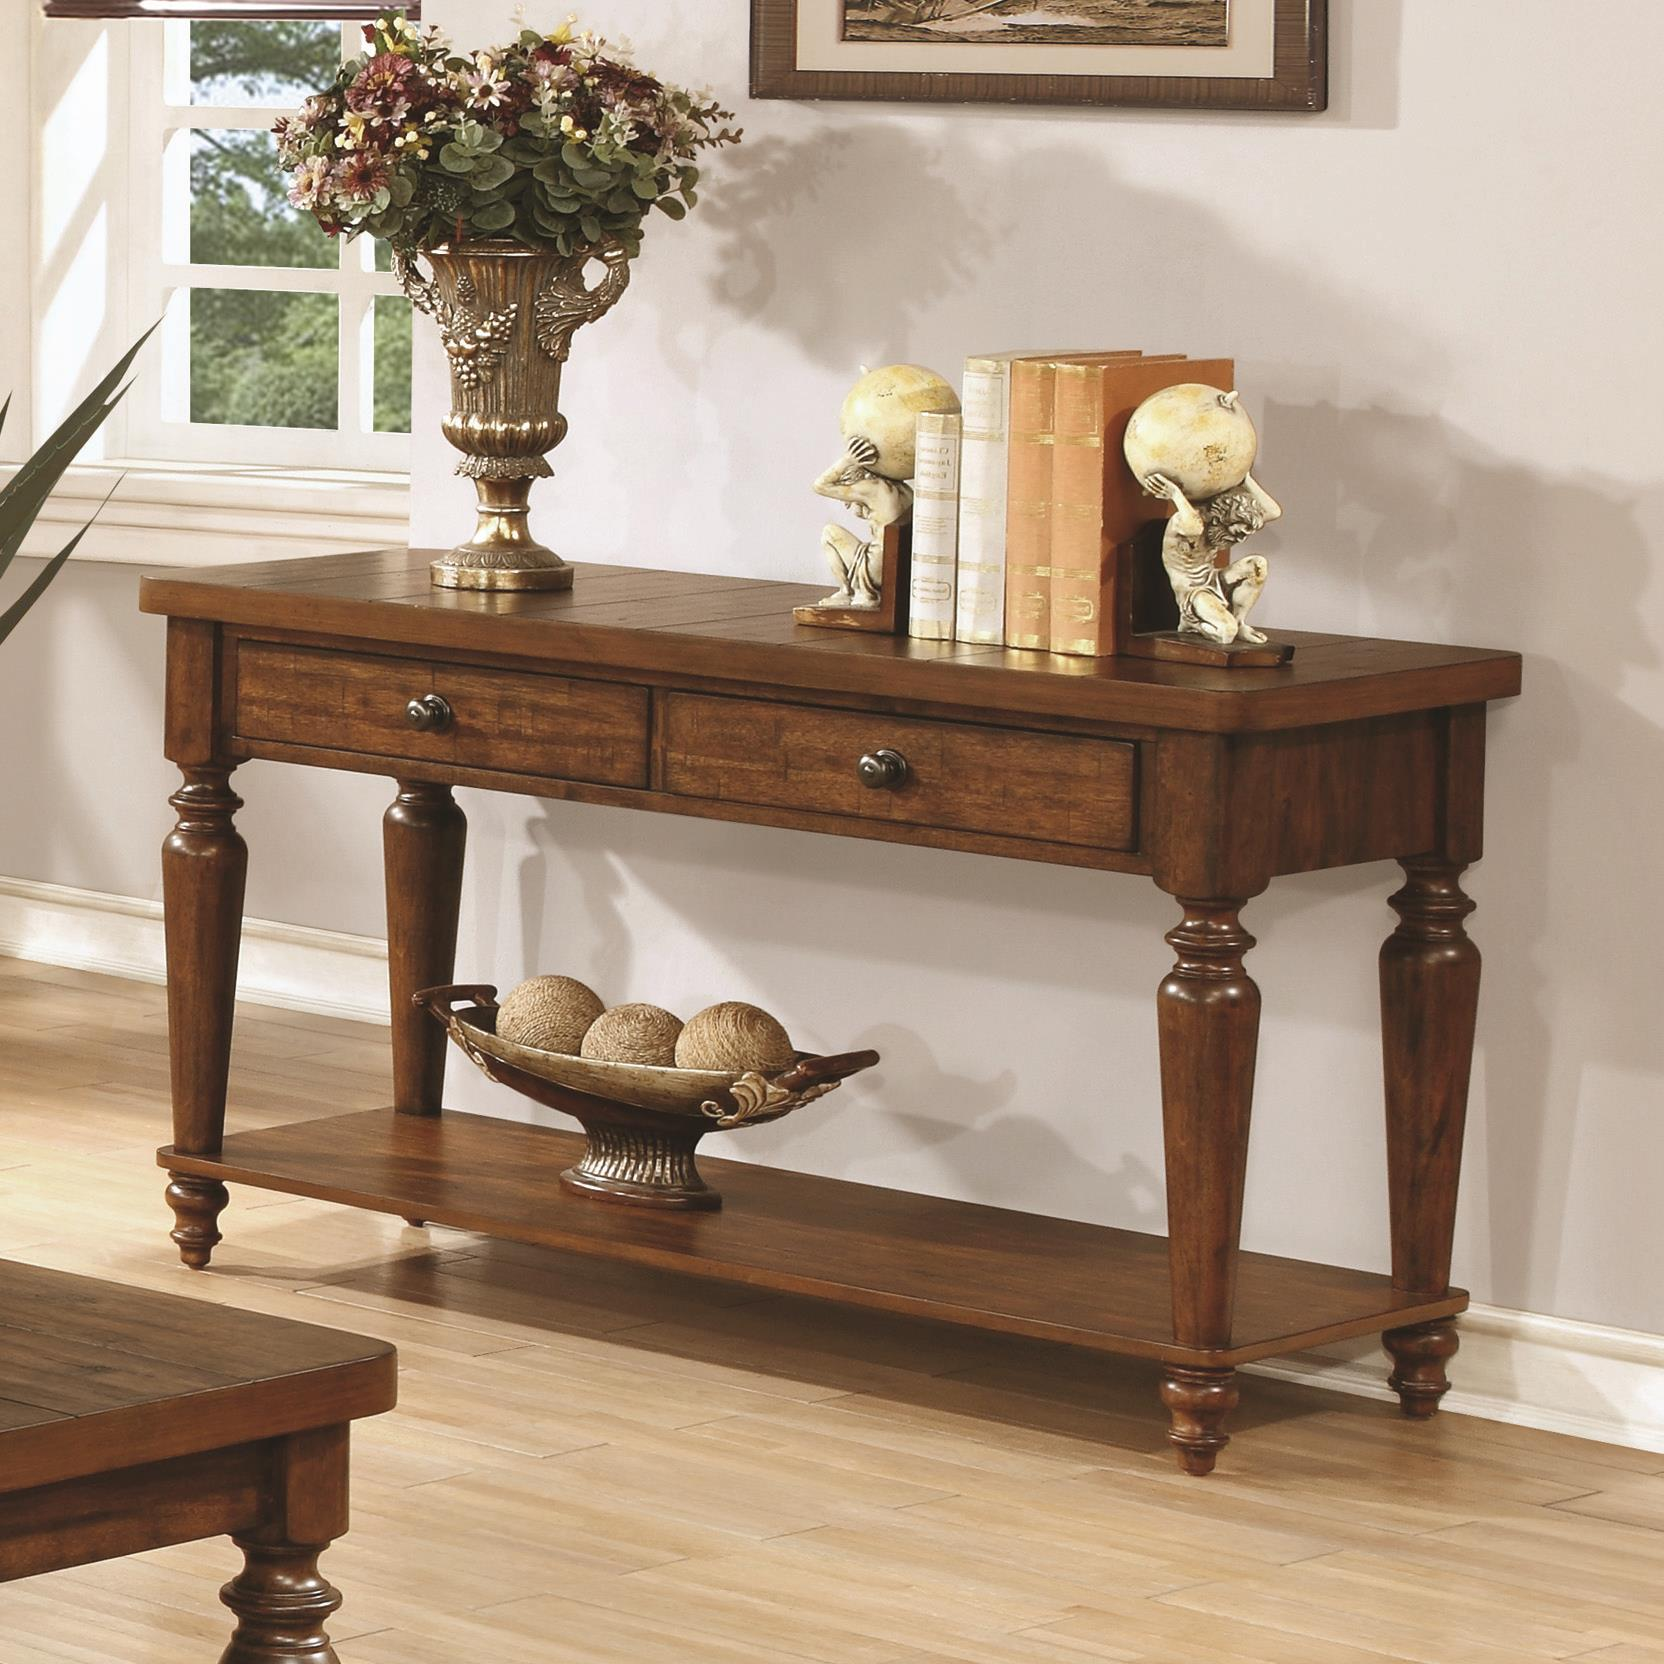 Coaster 70357 Sofa Table - Item Number: 703579